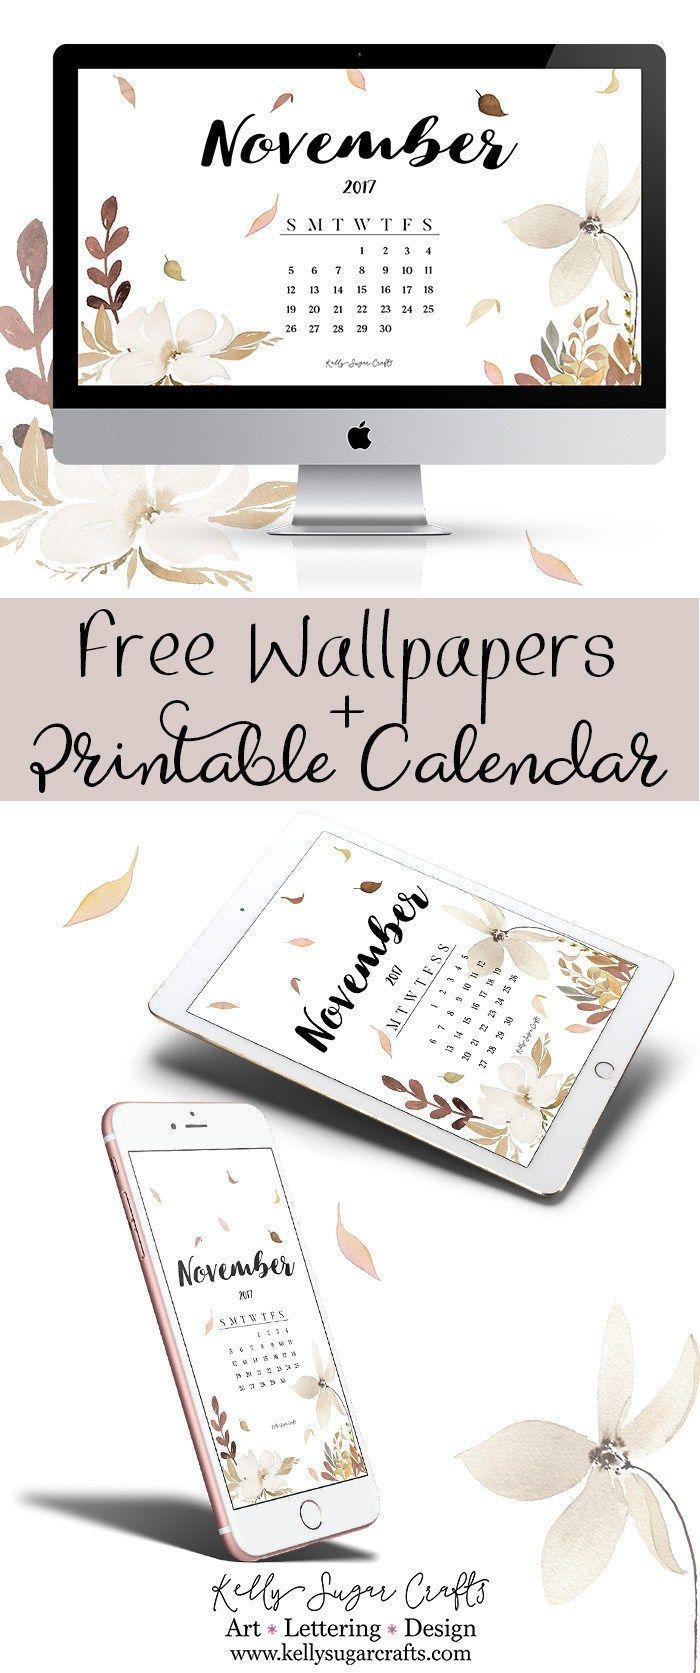 graphic regarding Printable Wallpapers called Desktop Wallpaper : November 2017 Calendar Wallpapers and